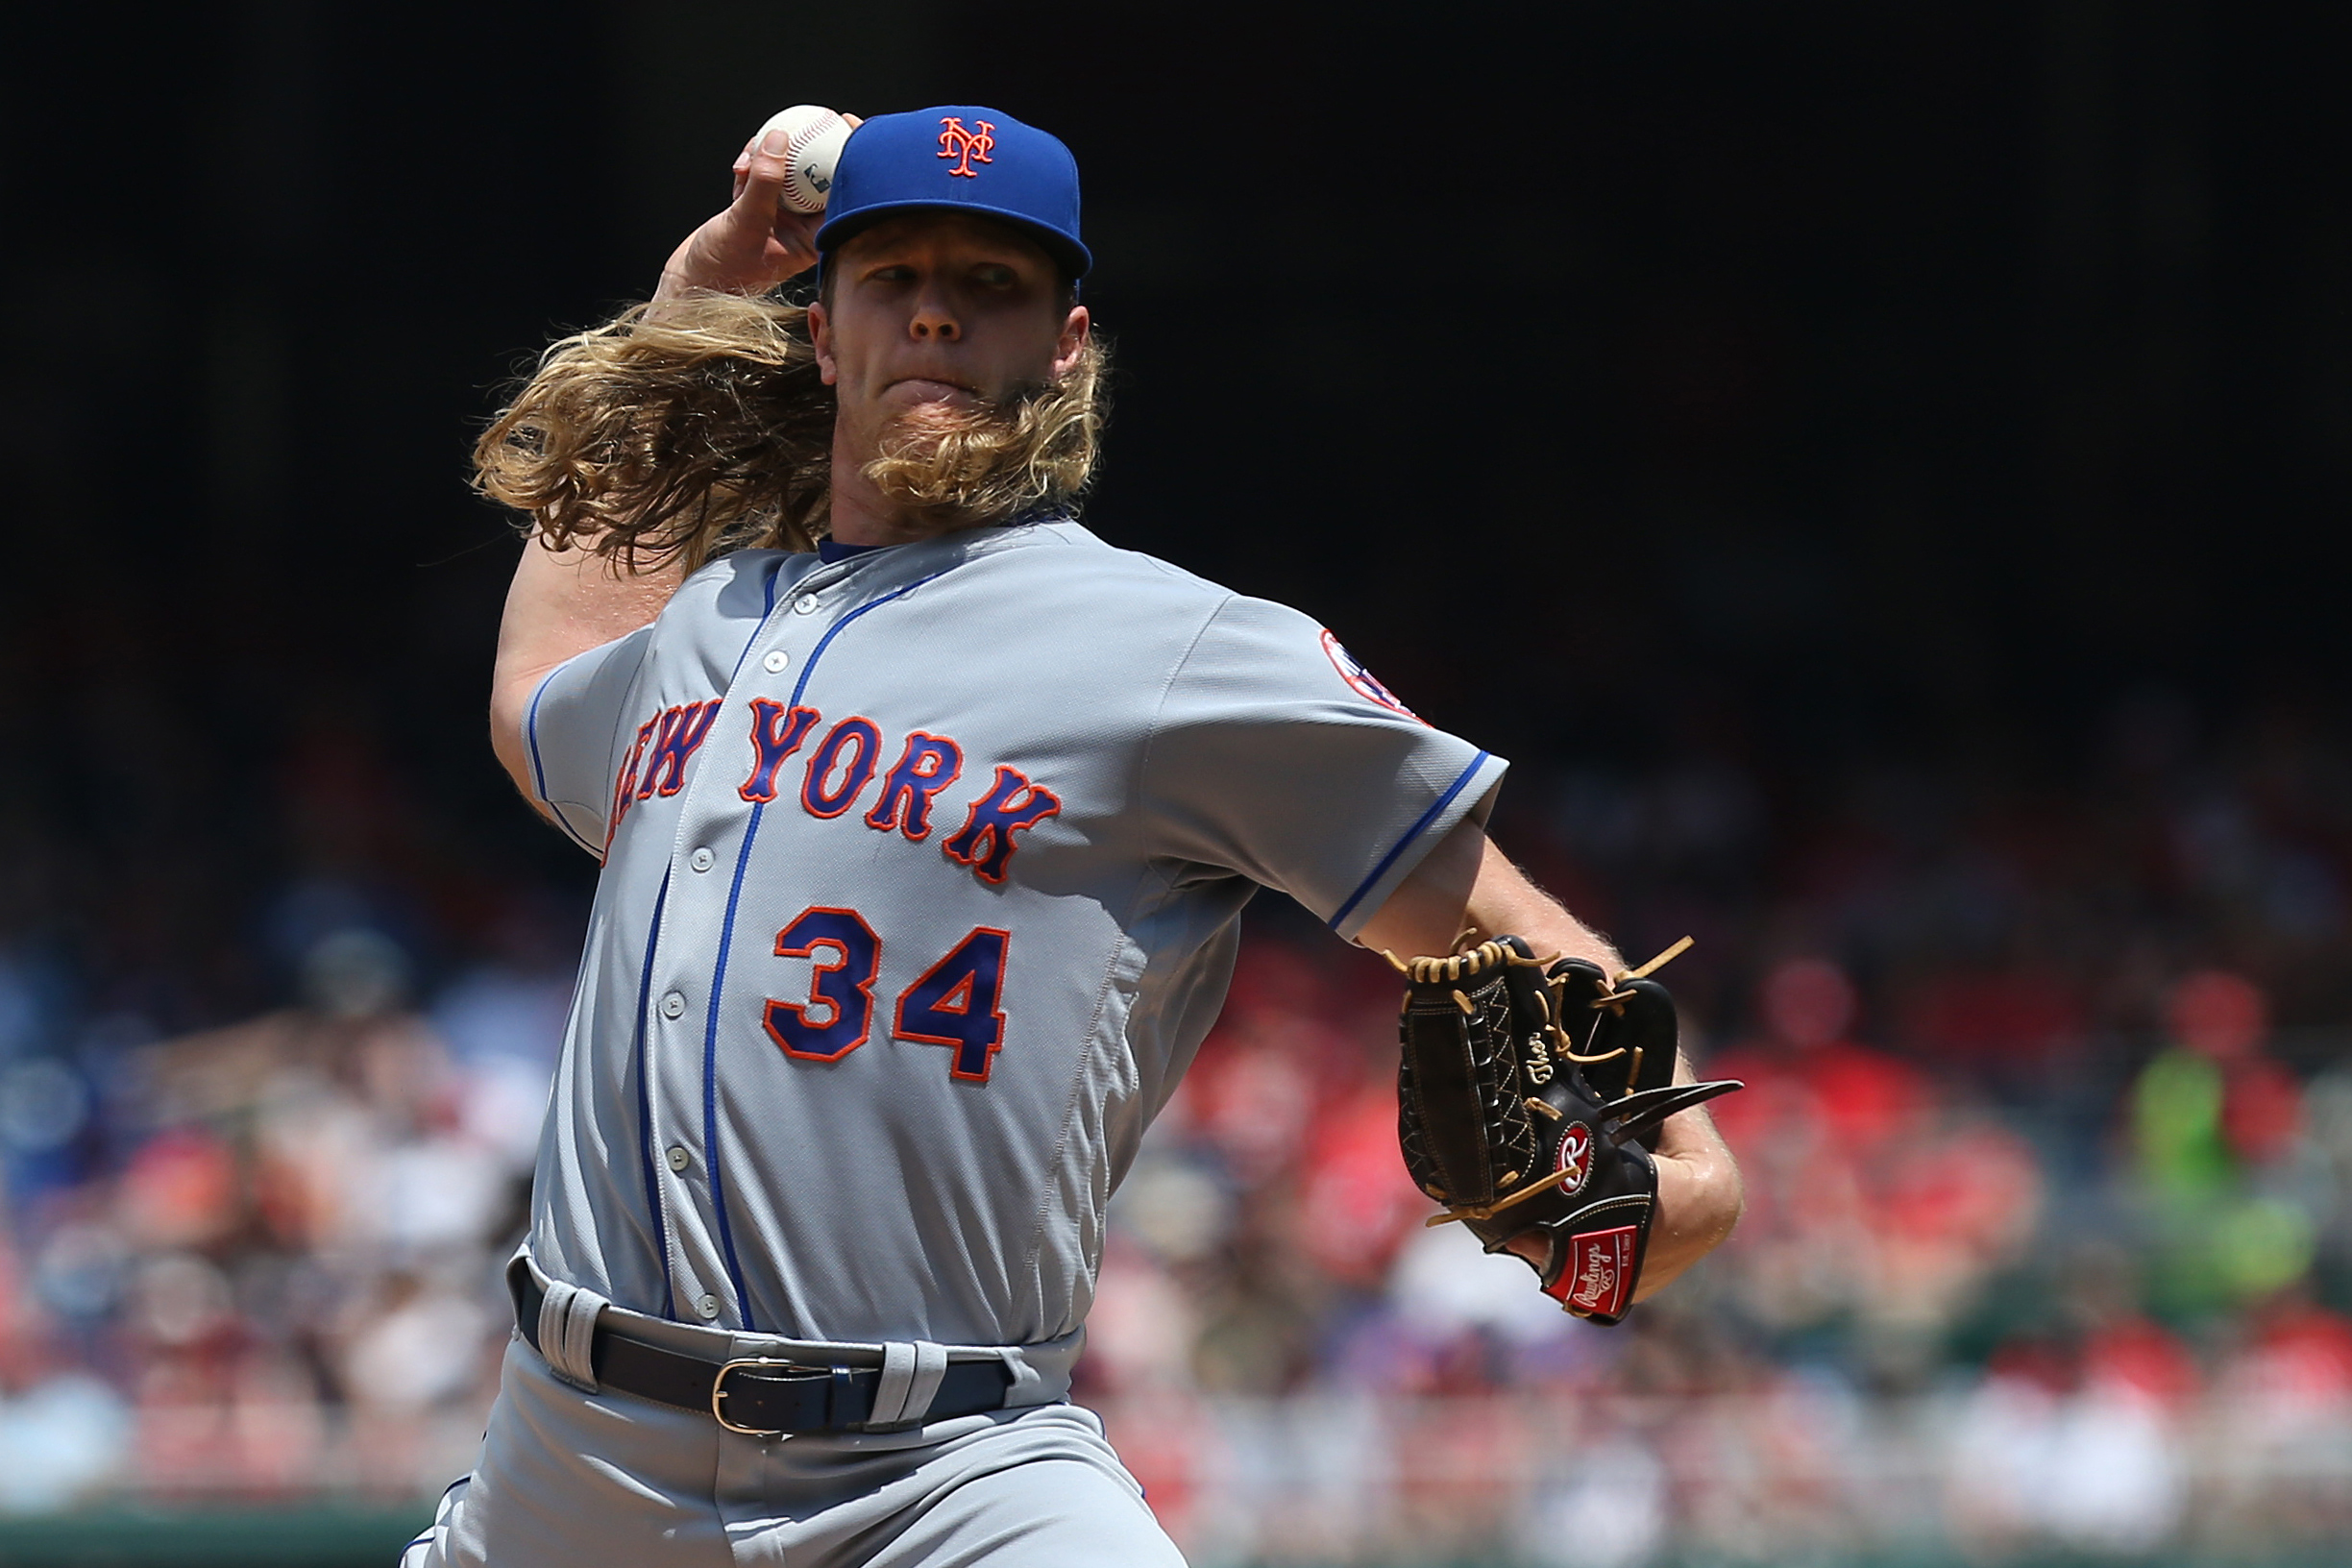 Top pitchers 25 years of age or younger in MLB